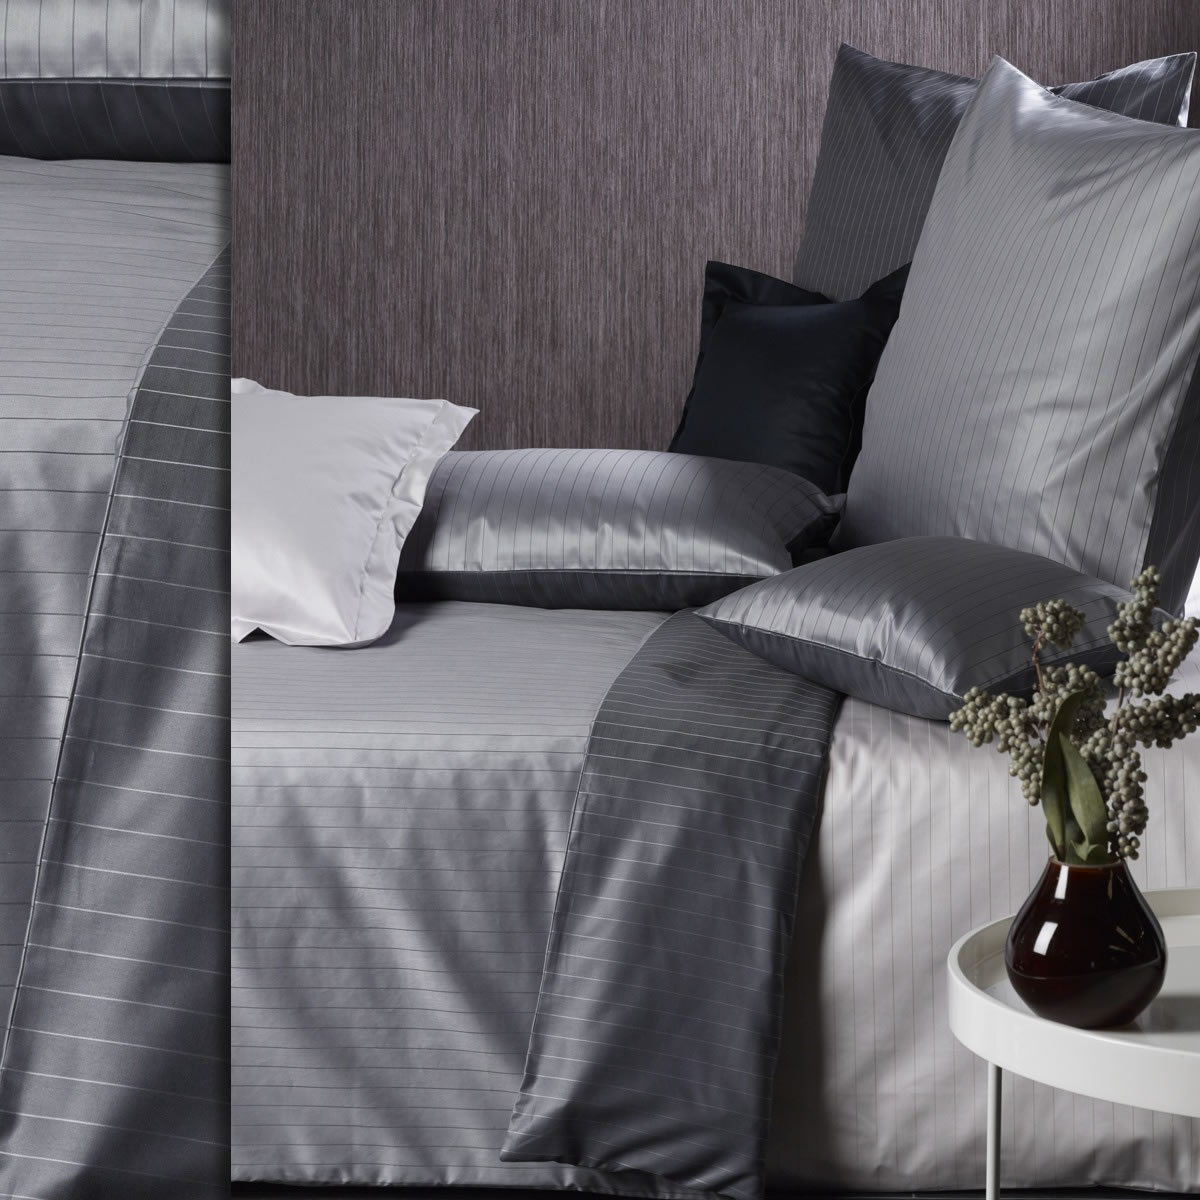 curt bauer mako brokat damast bettw sche ferrara 200x220 cm 2452 nadelstreifen ebay. Black Bedroom Furniture Sets. Home Design Ideas